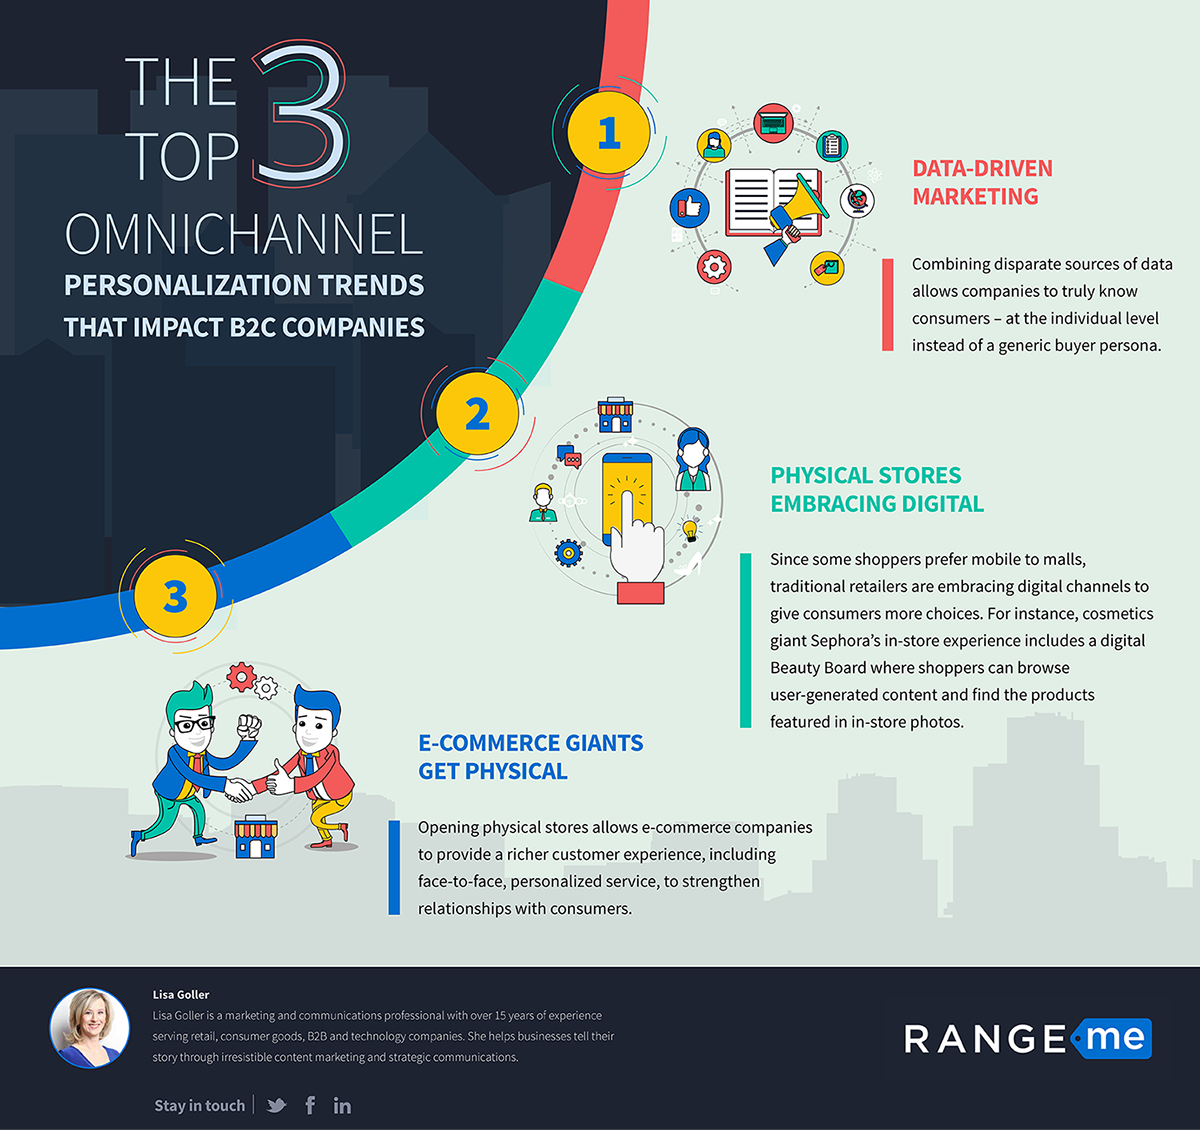 The Top 3 Omnichannel Personalization Trends